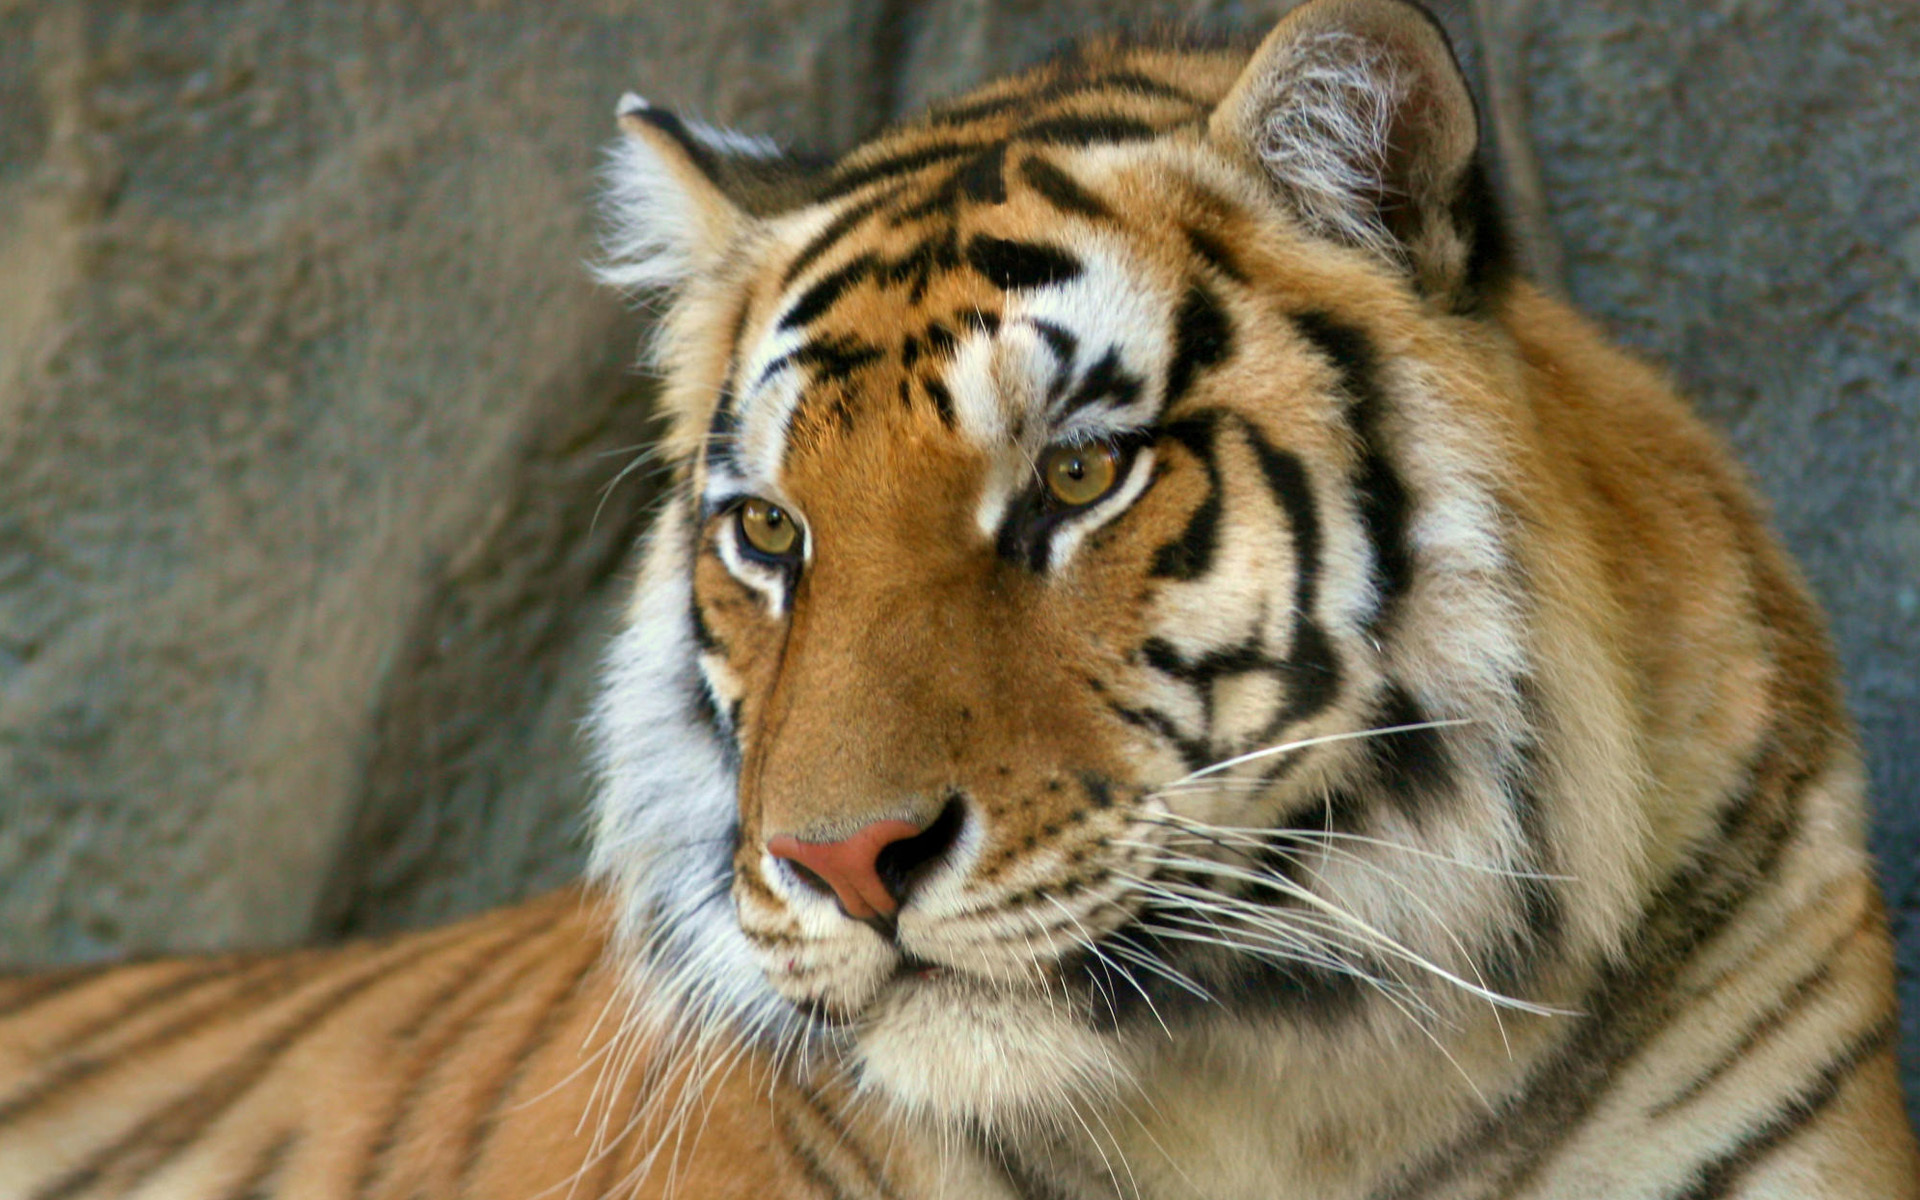 Funny Images Of Tigers